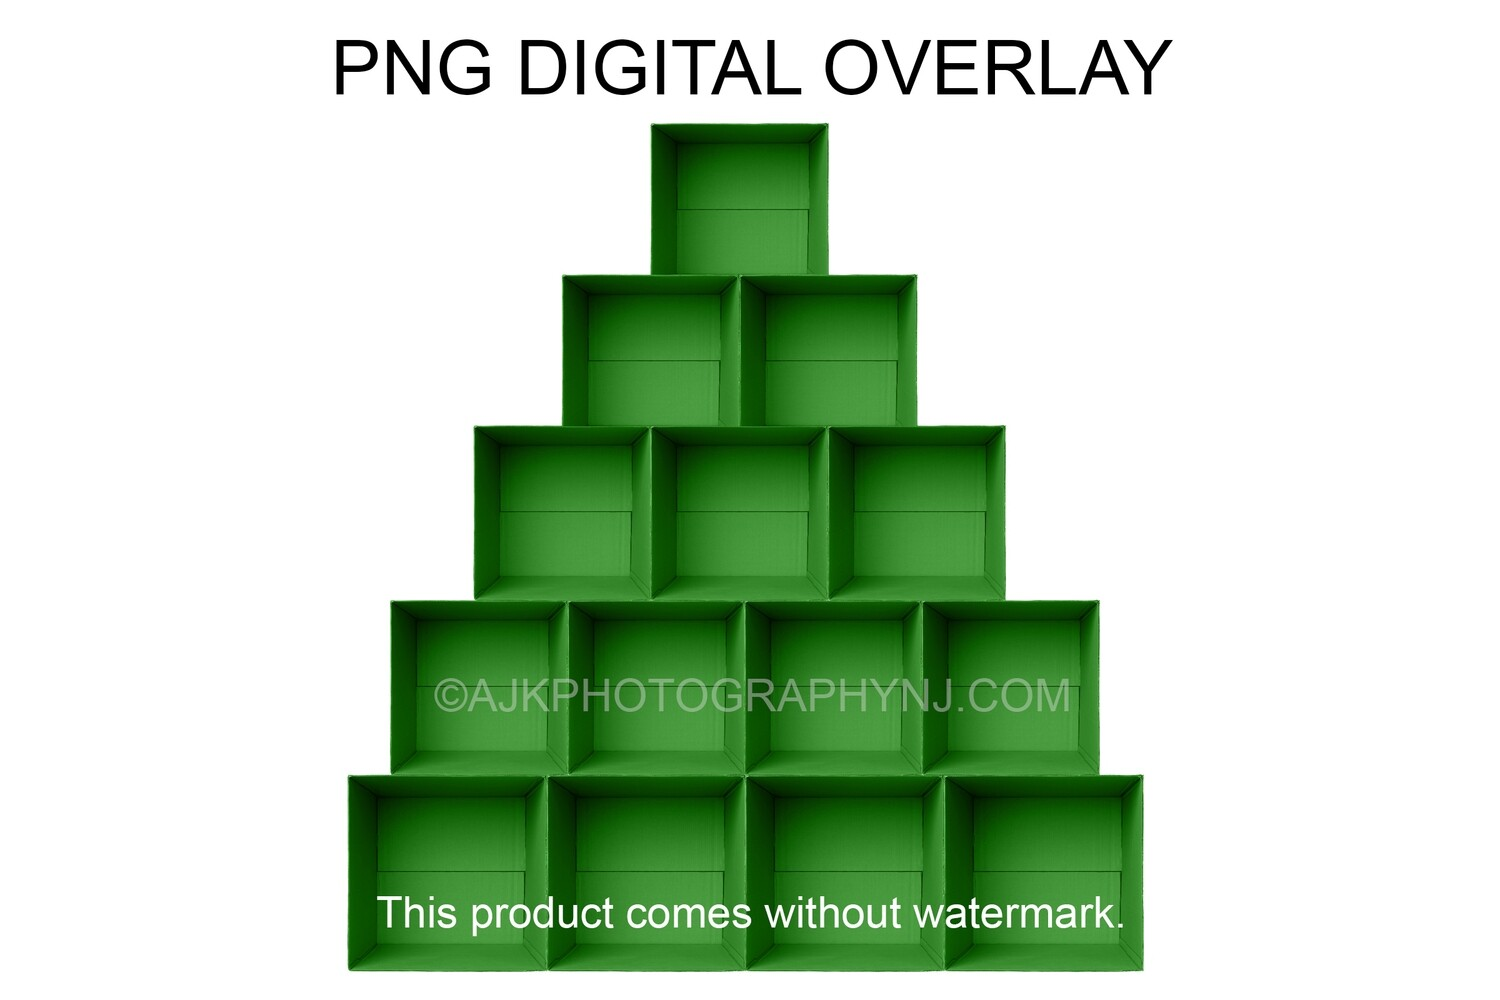 PNG overlay, 14 green empty cardboard boxes template, Christmas tree shaped boxes, PNG Digital Overlay